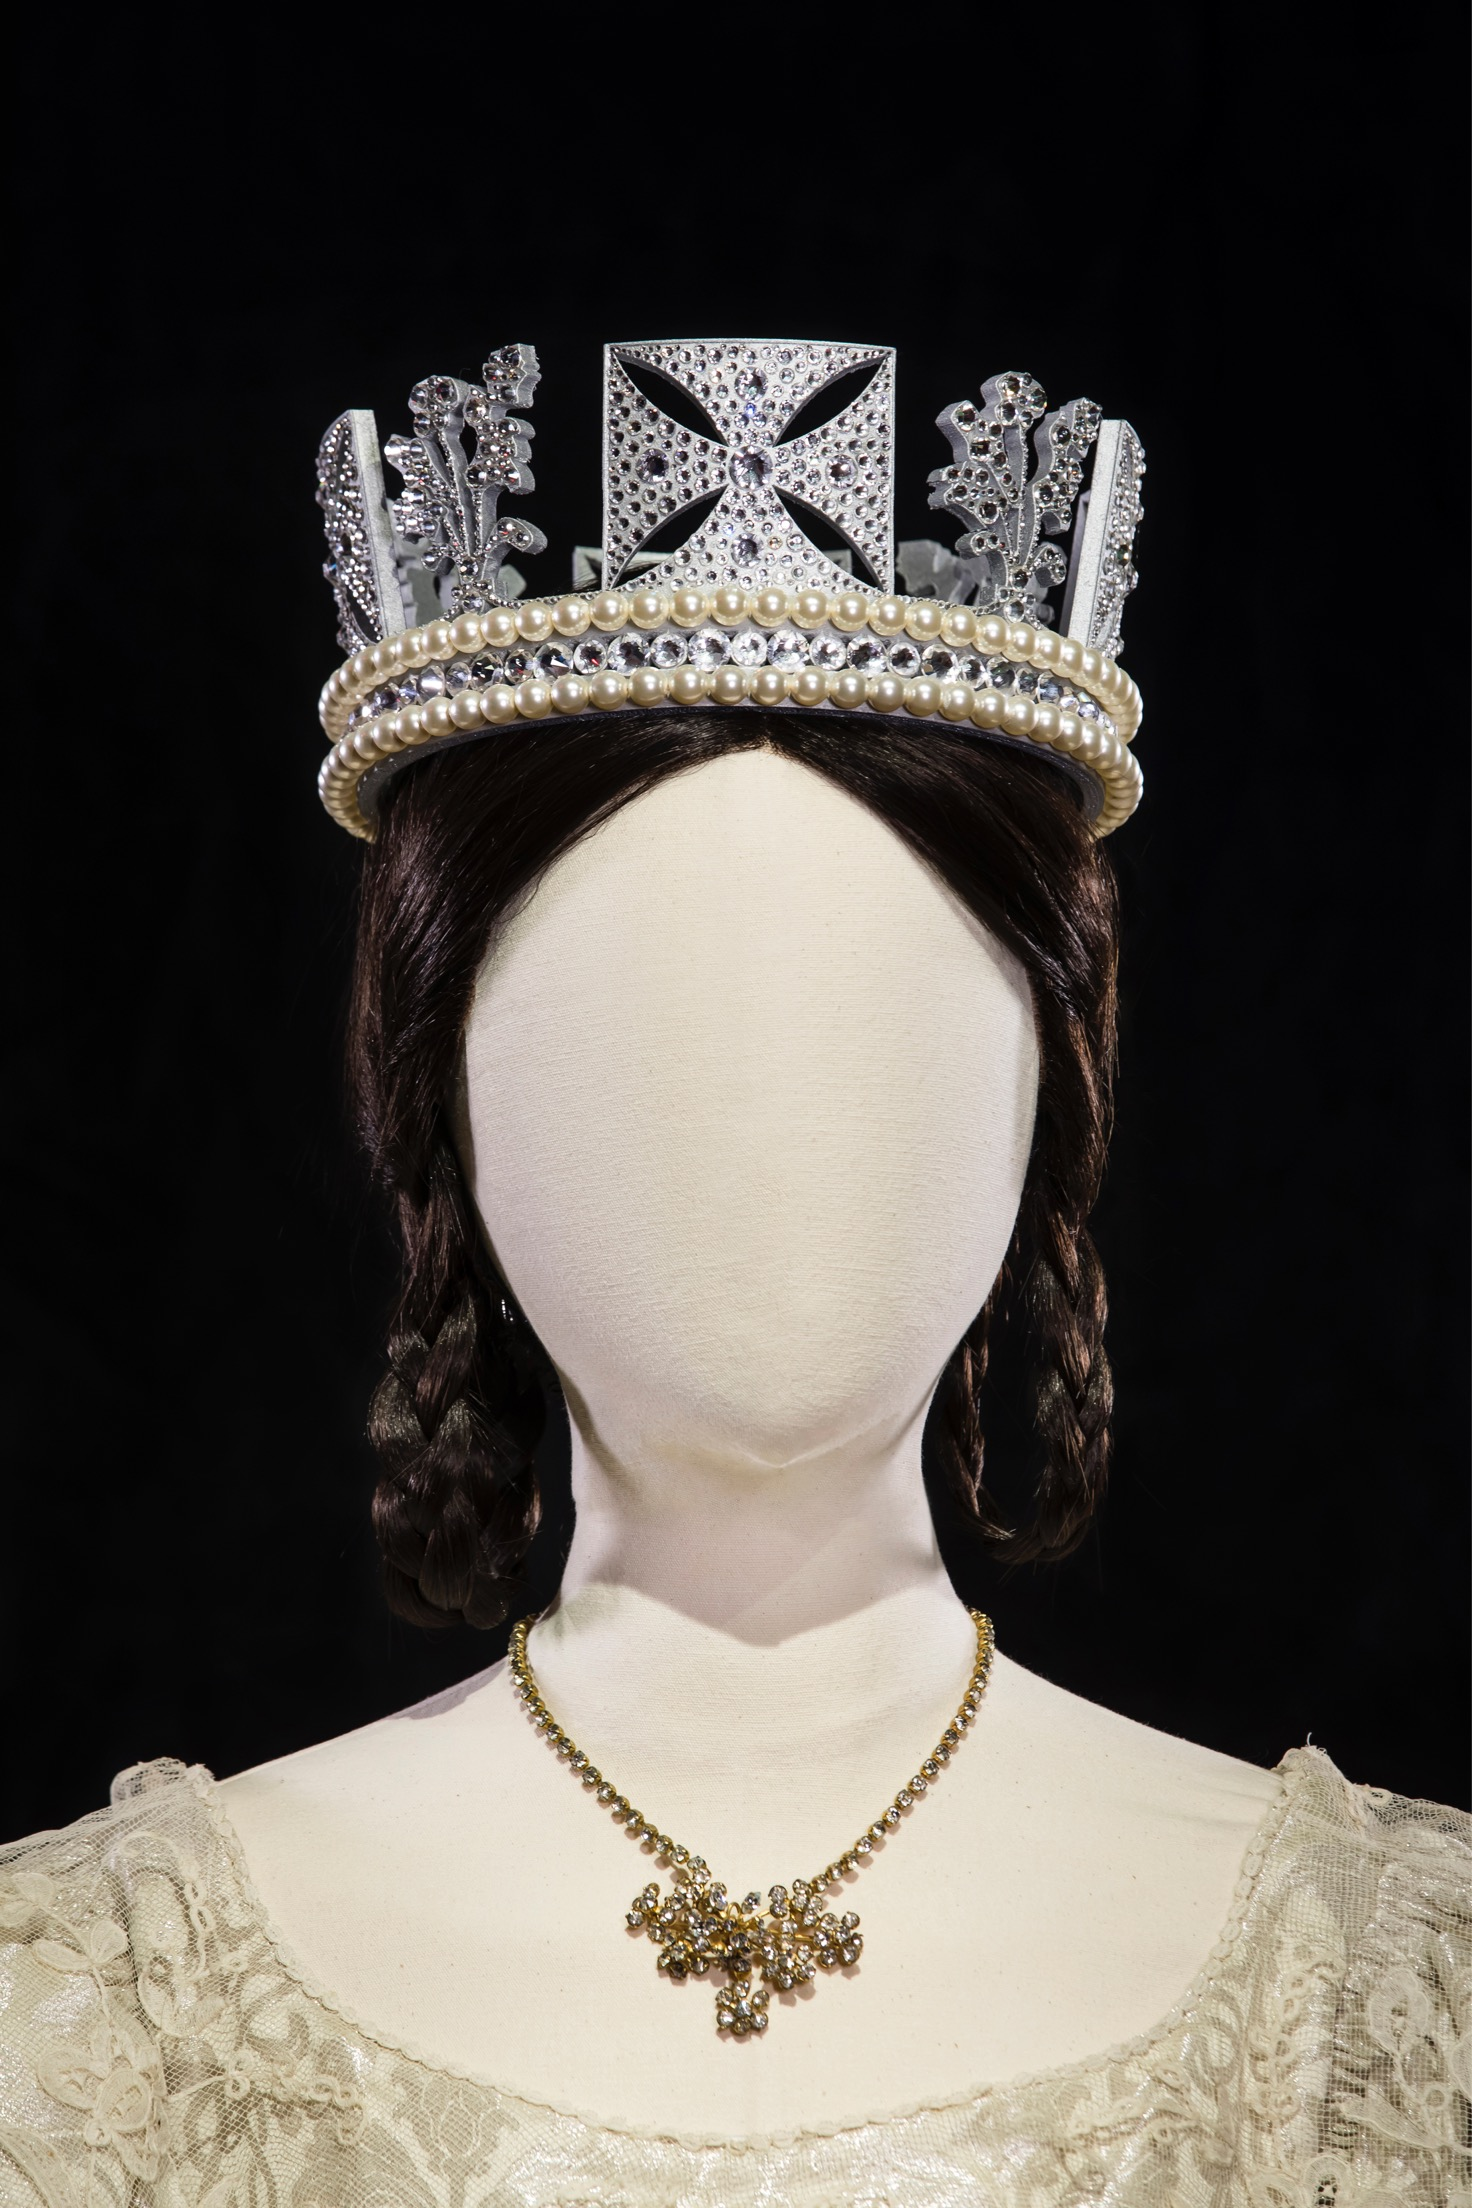 """Diamond Diadem Recreation by Tina Gancev - Exhibited during """"Cinematic Couture"""" exhibition at SCAD FASH, Museum of Fashion and Film in Atlanta, GA."""